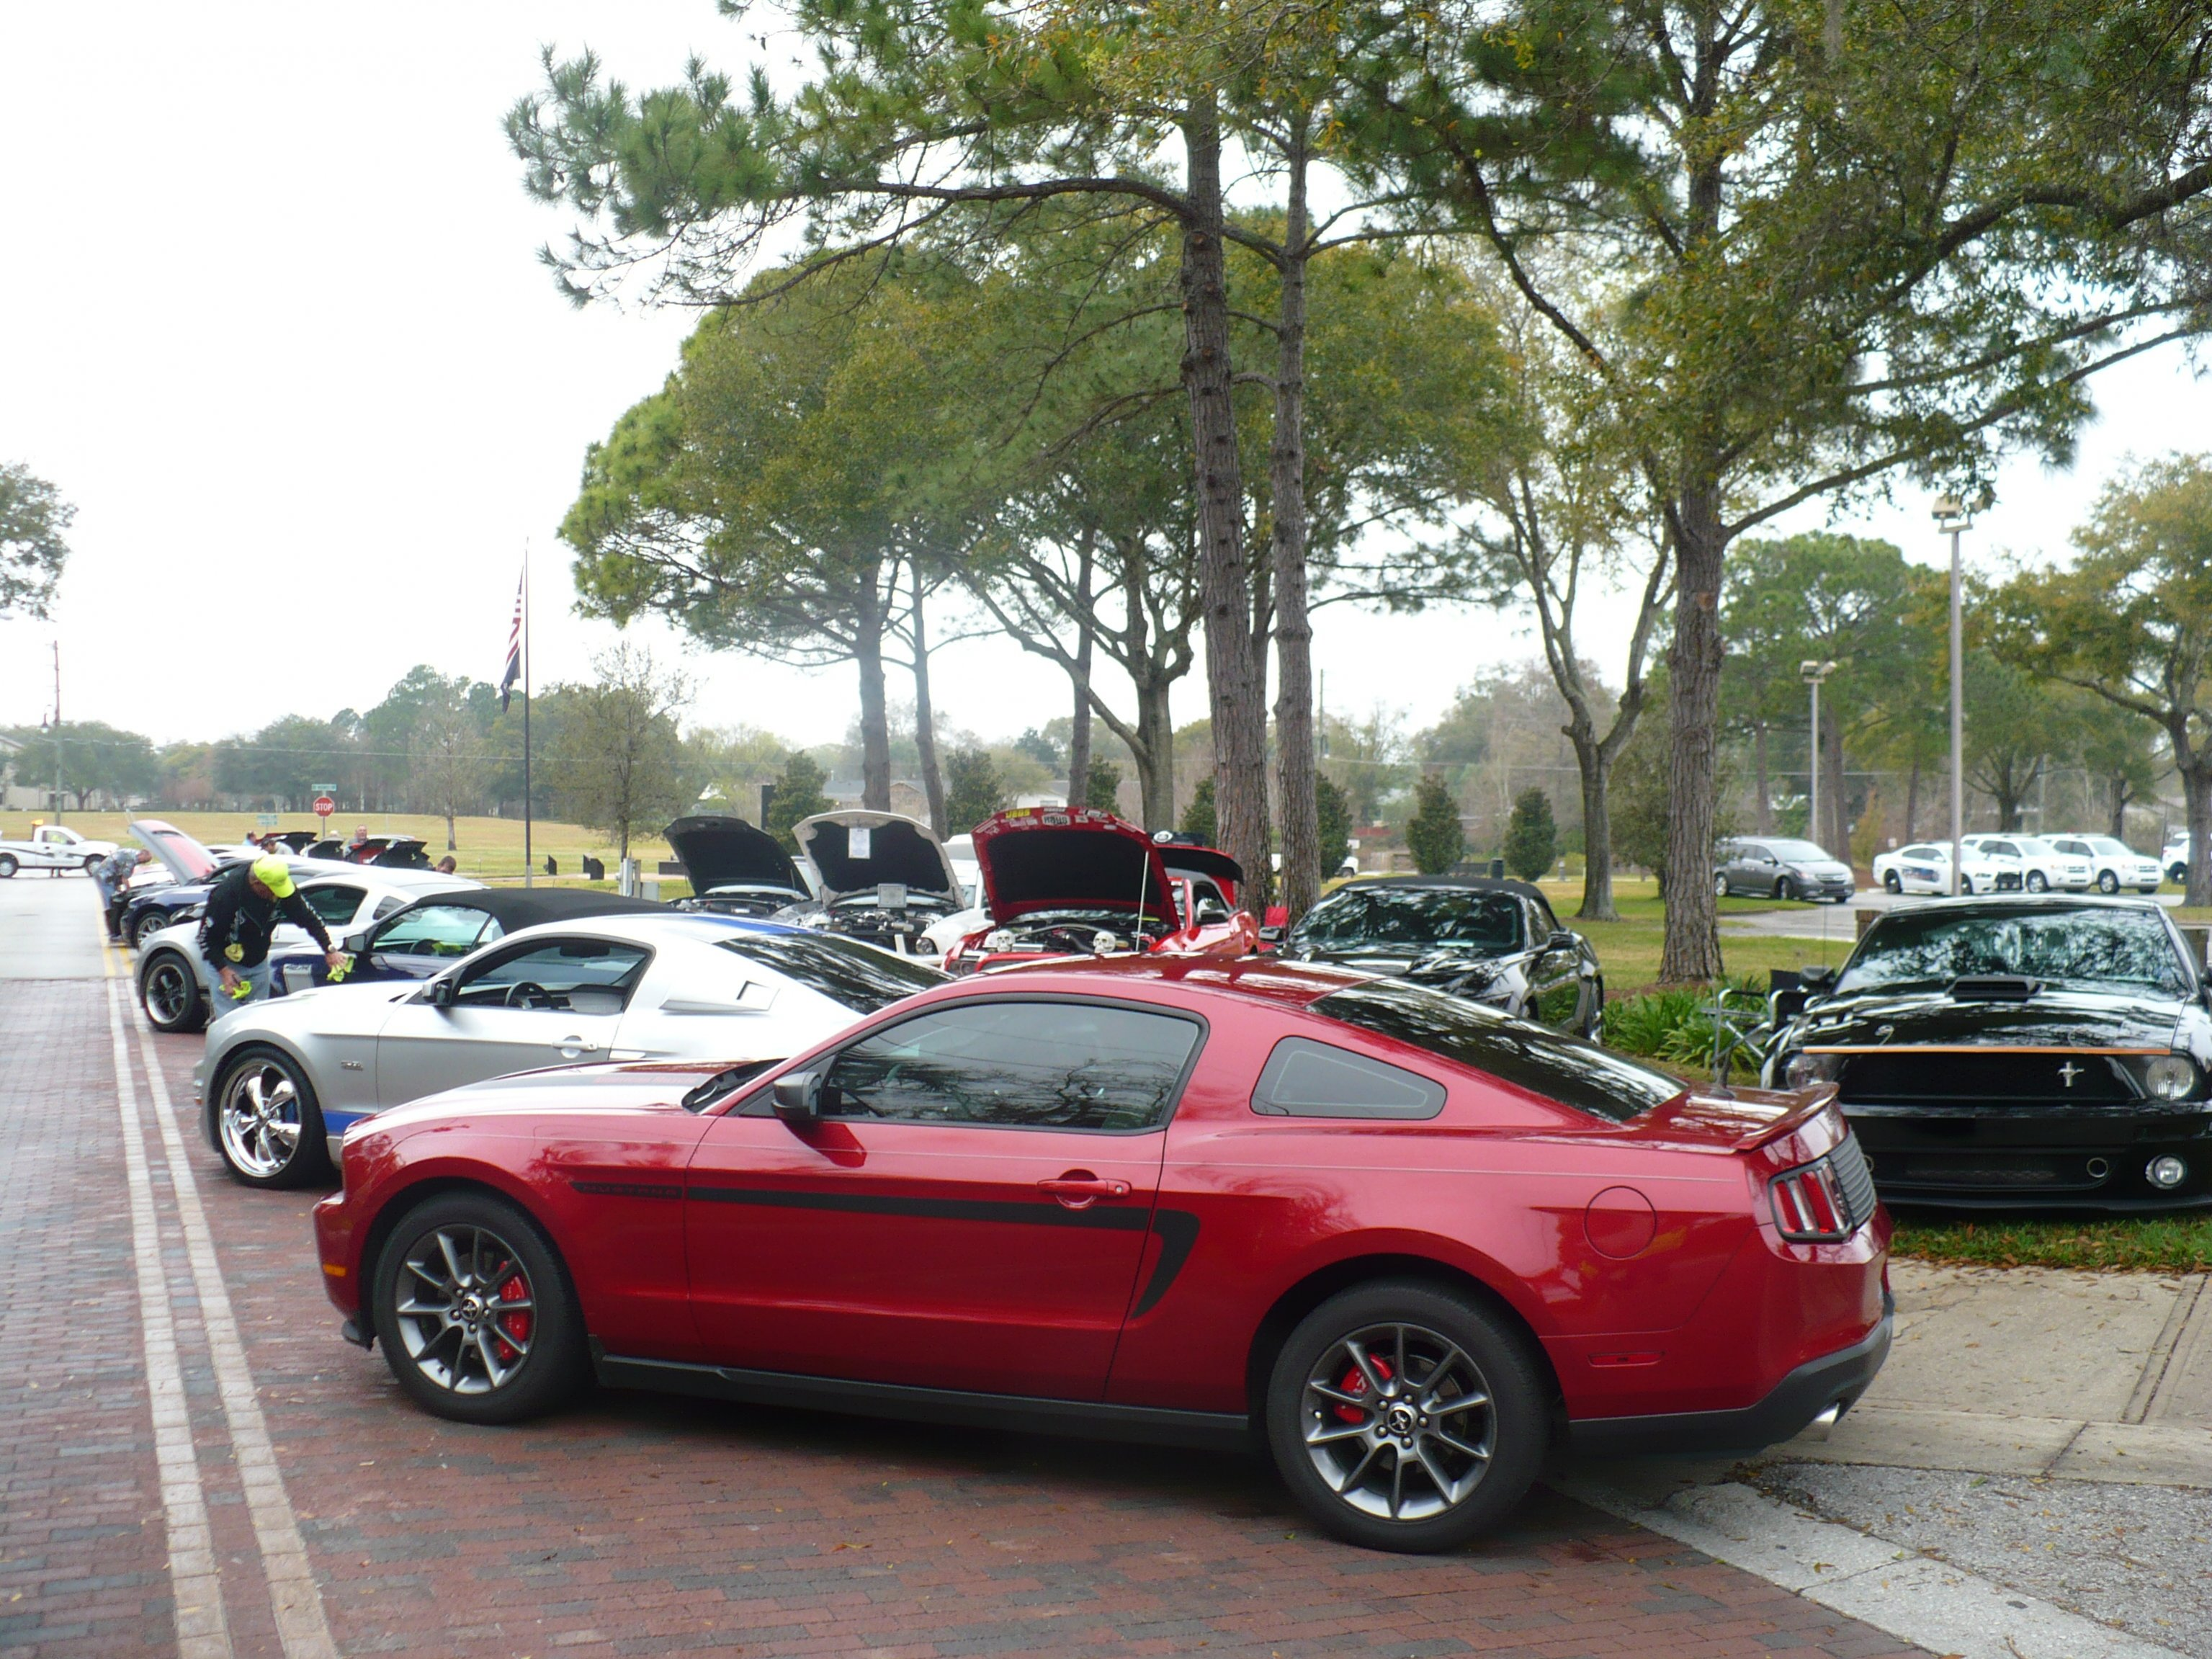 Click image for larger version  Name:Longwood rain Mustang.jpg Views:127 Size:1.15 MB ID:201816